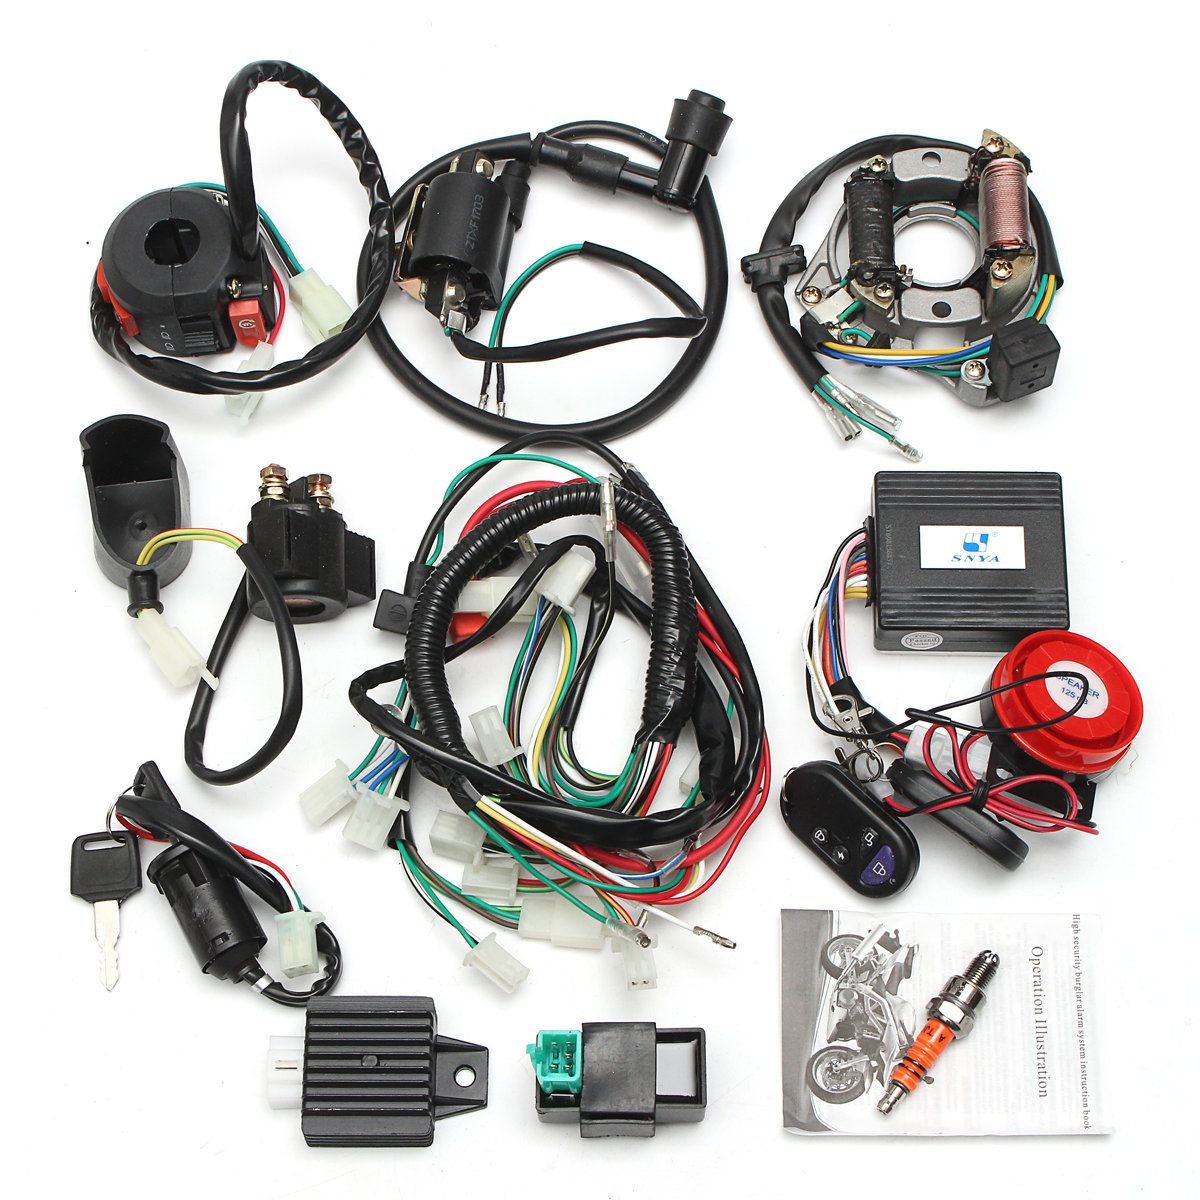 hight resolution of alarm system cdi wiring harness remote start switch high security for electric